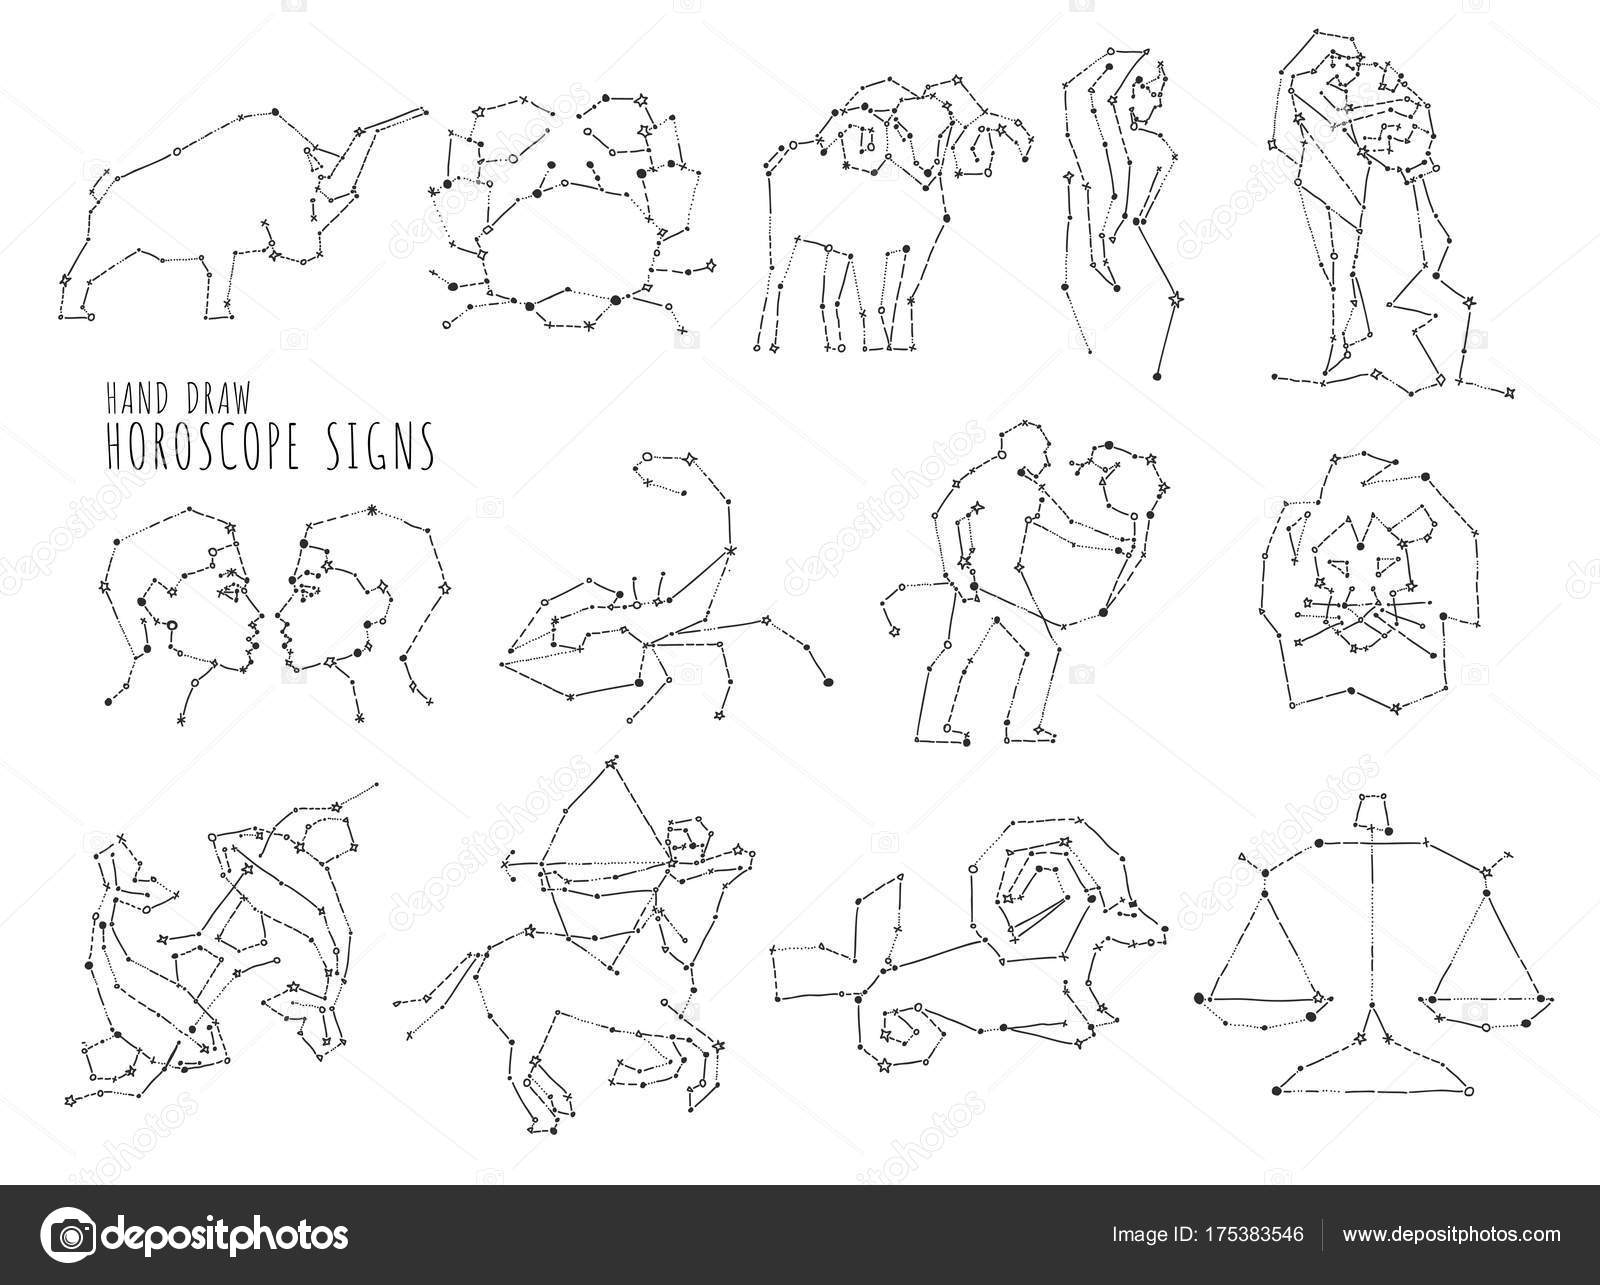 Hand Draw Horoscope Symbols All Zodiac Signs In Constellation Style